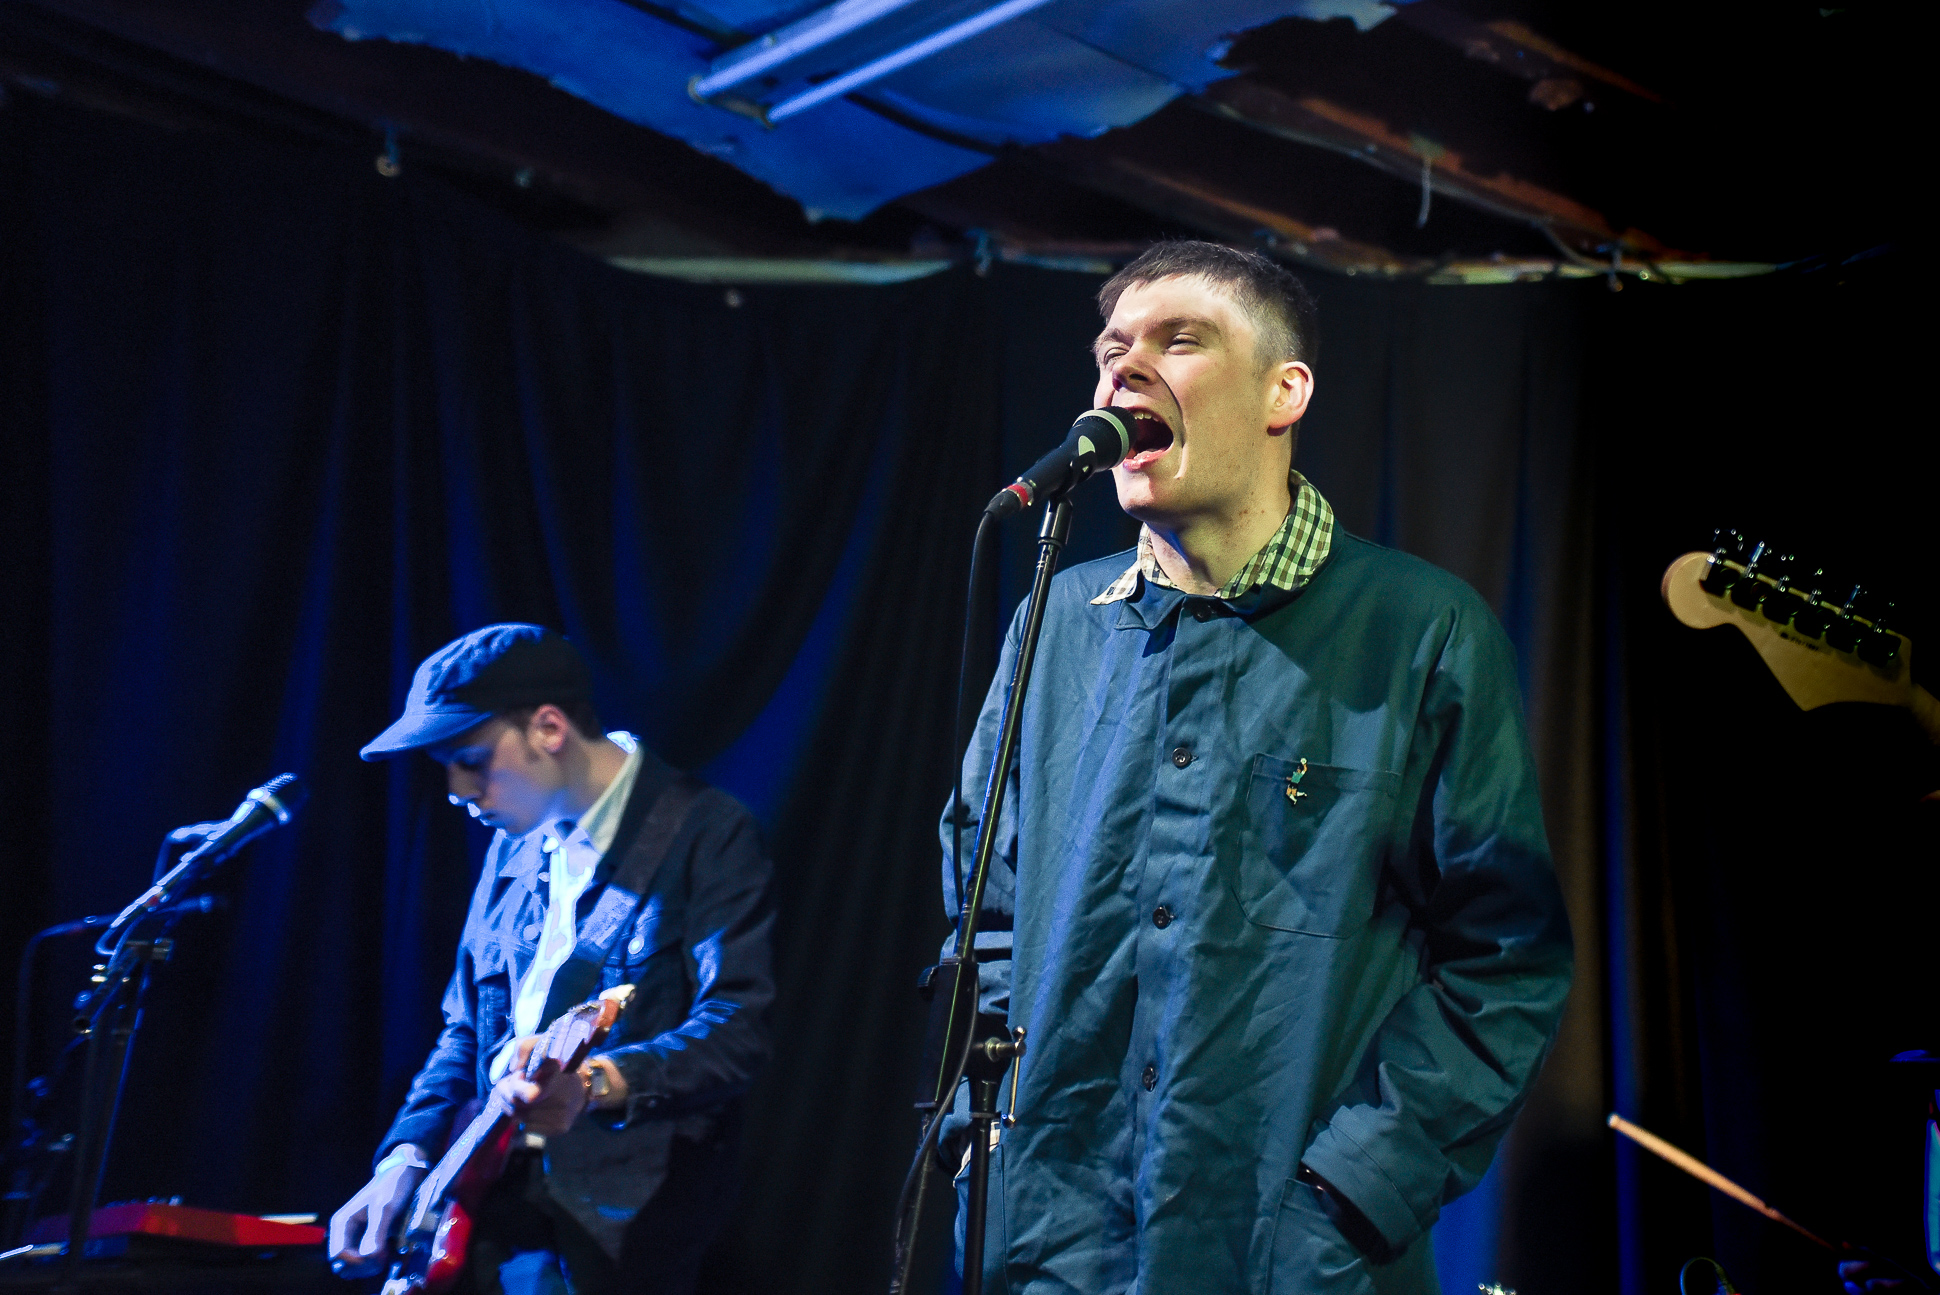 Live At Leeds 2019 - Hotel Lux-2.jpg